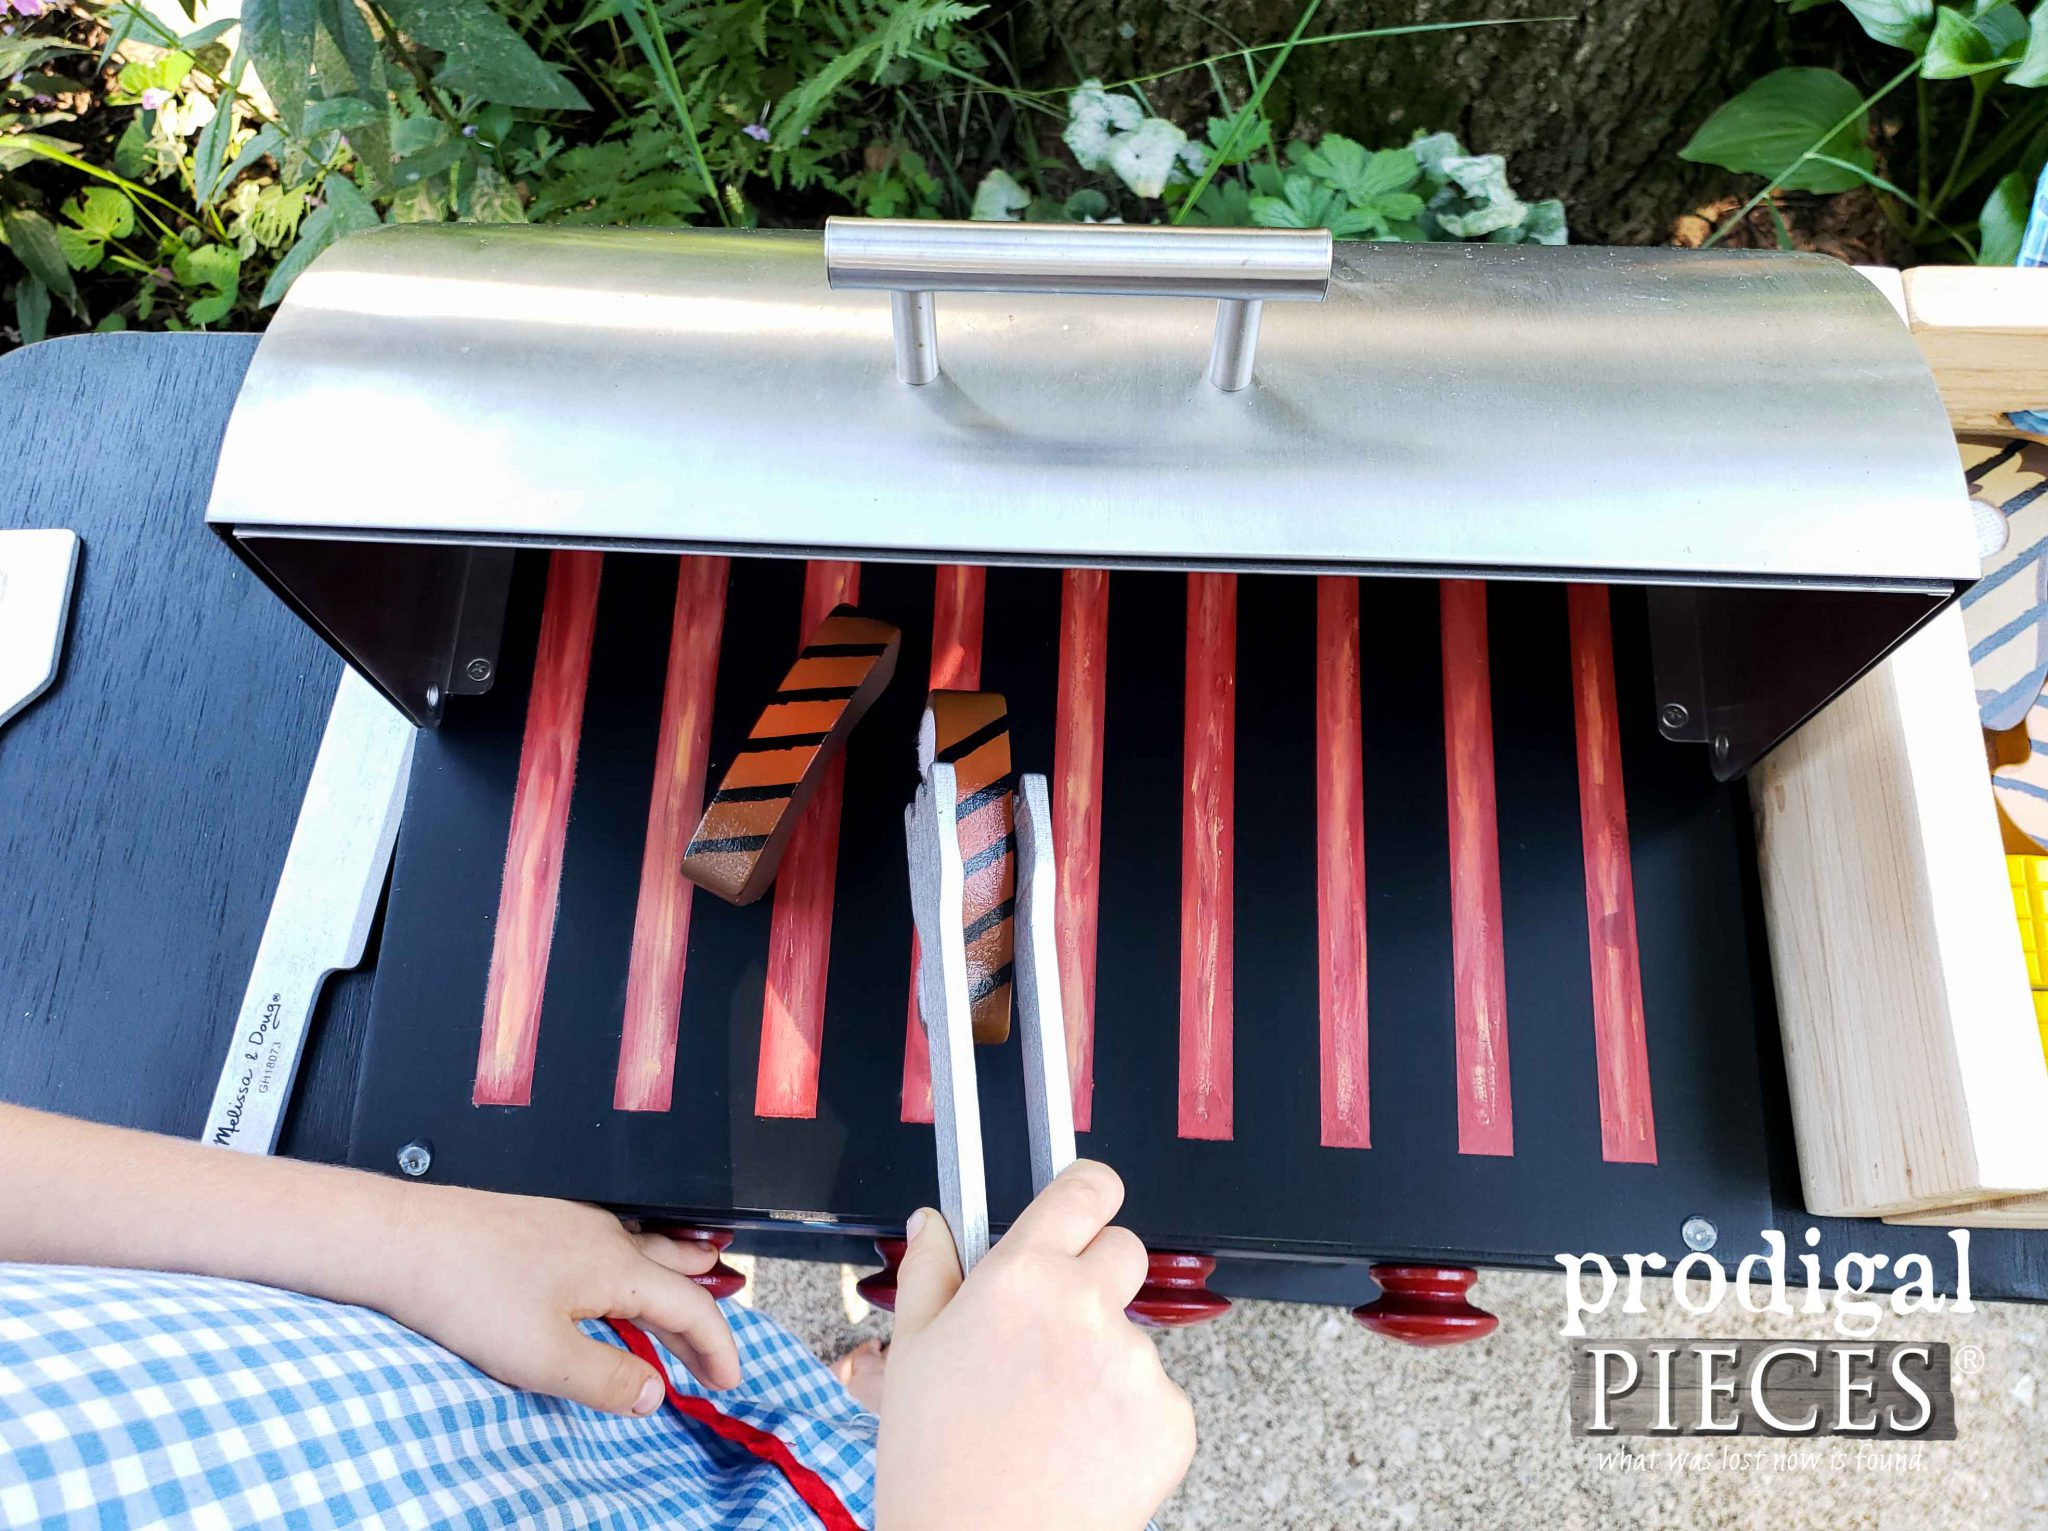 Pretend Play Ribs on Toy Grill by Larissa of Prodigal Pieces | prodigalpieces.com #prodigalpieces #diy #handmade #toys #kids #playtime #pretend